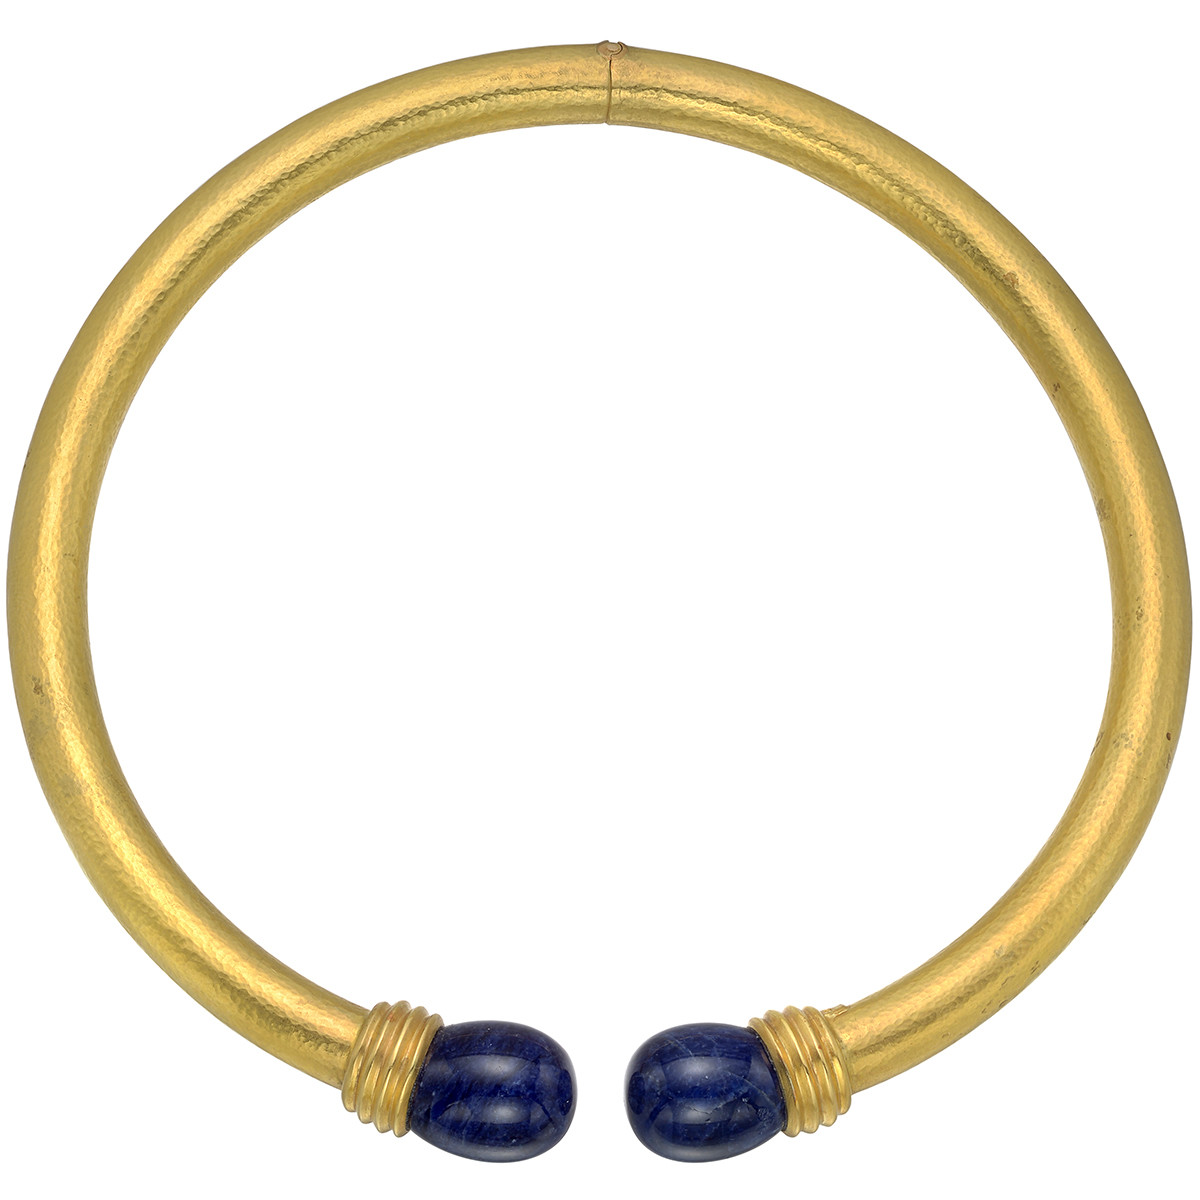 18k Yellow Gold & Lapis Collar Necklace